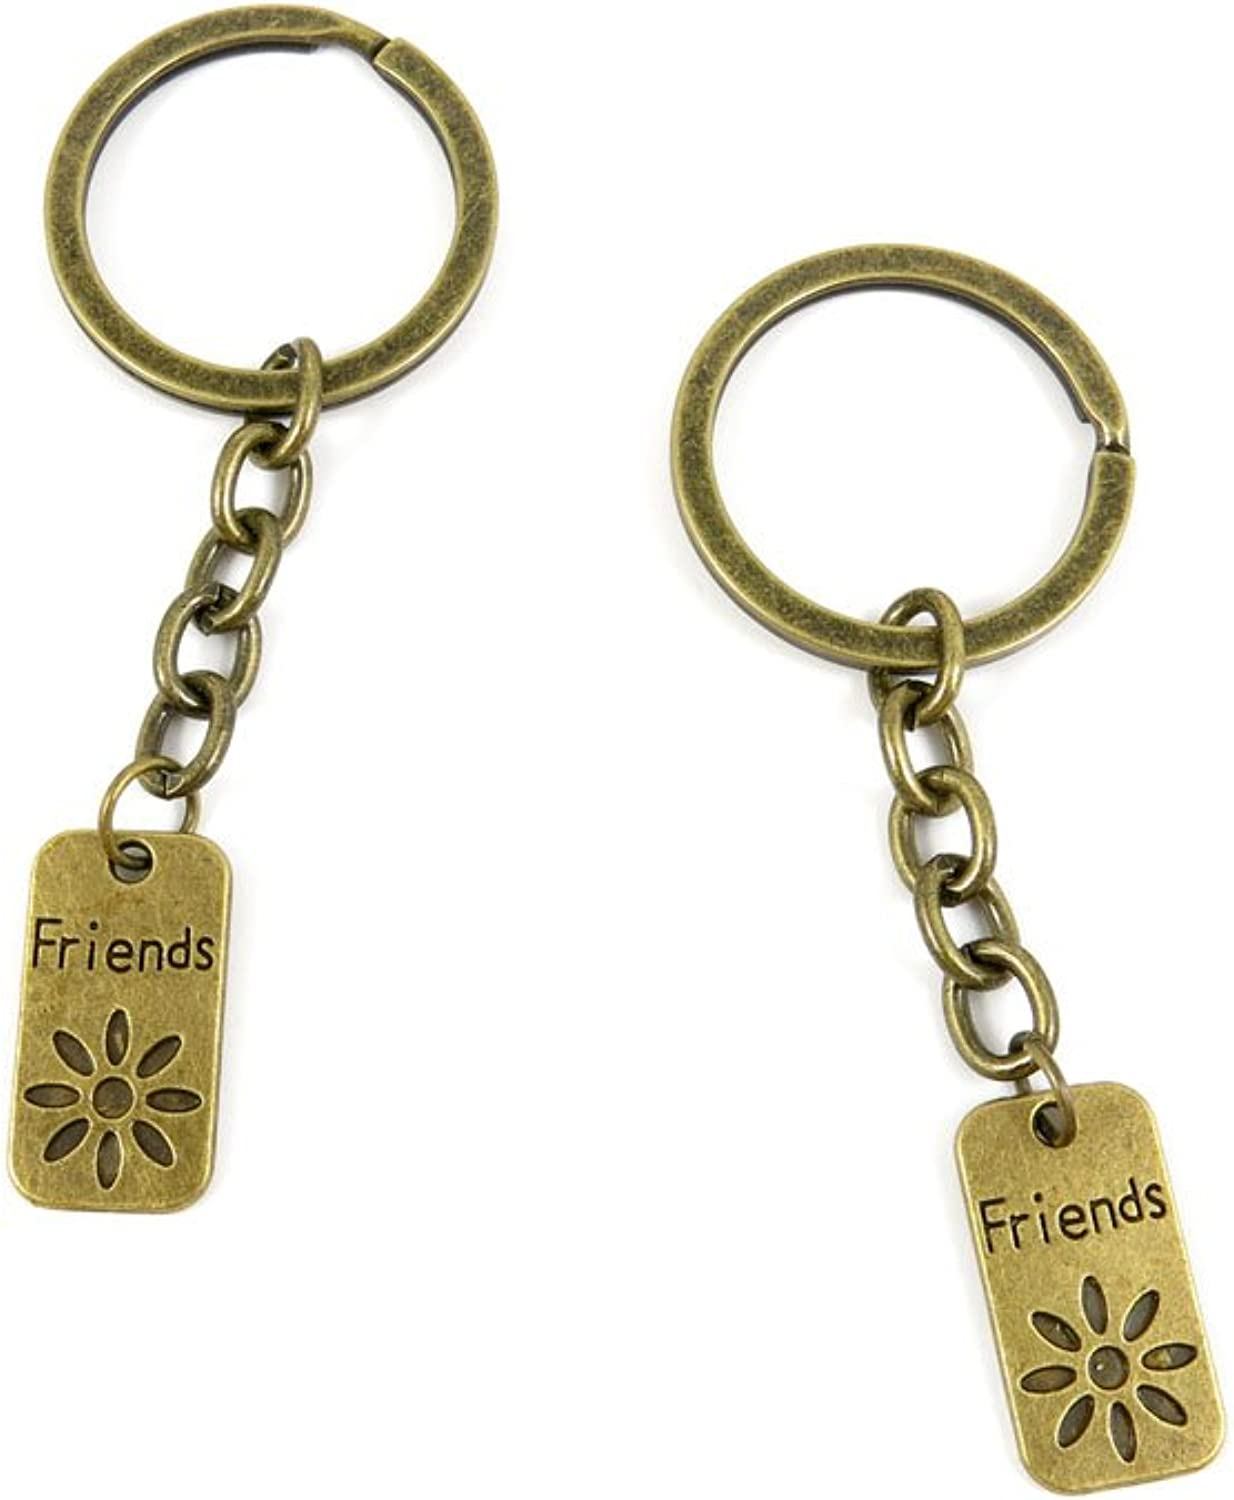 200 Pieces Fashion Jewelry Keyring Keychain Door Car Key Tag Ring Chain Supplier Supply Wholesale Bulk Lots I5YZ4 Friends Signs Tag